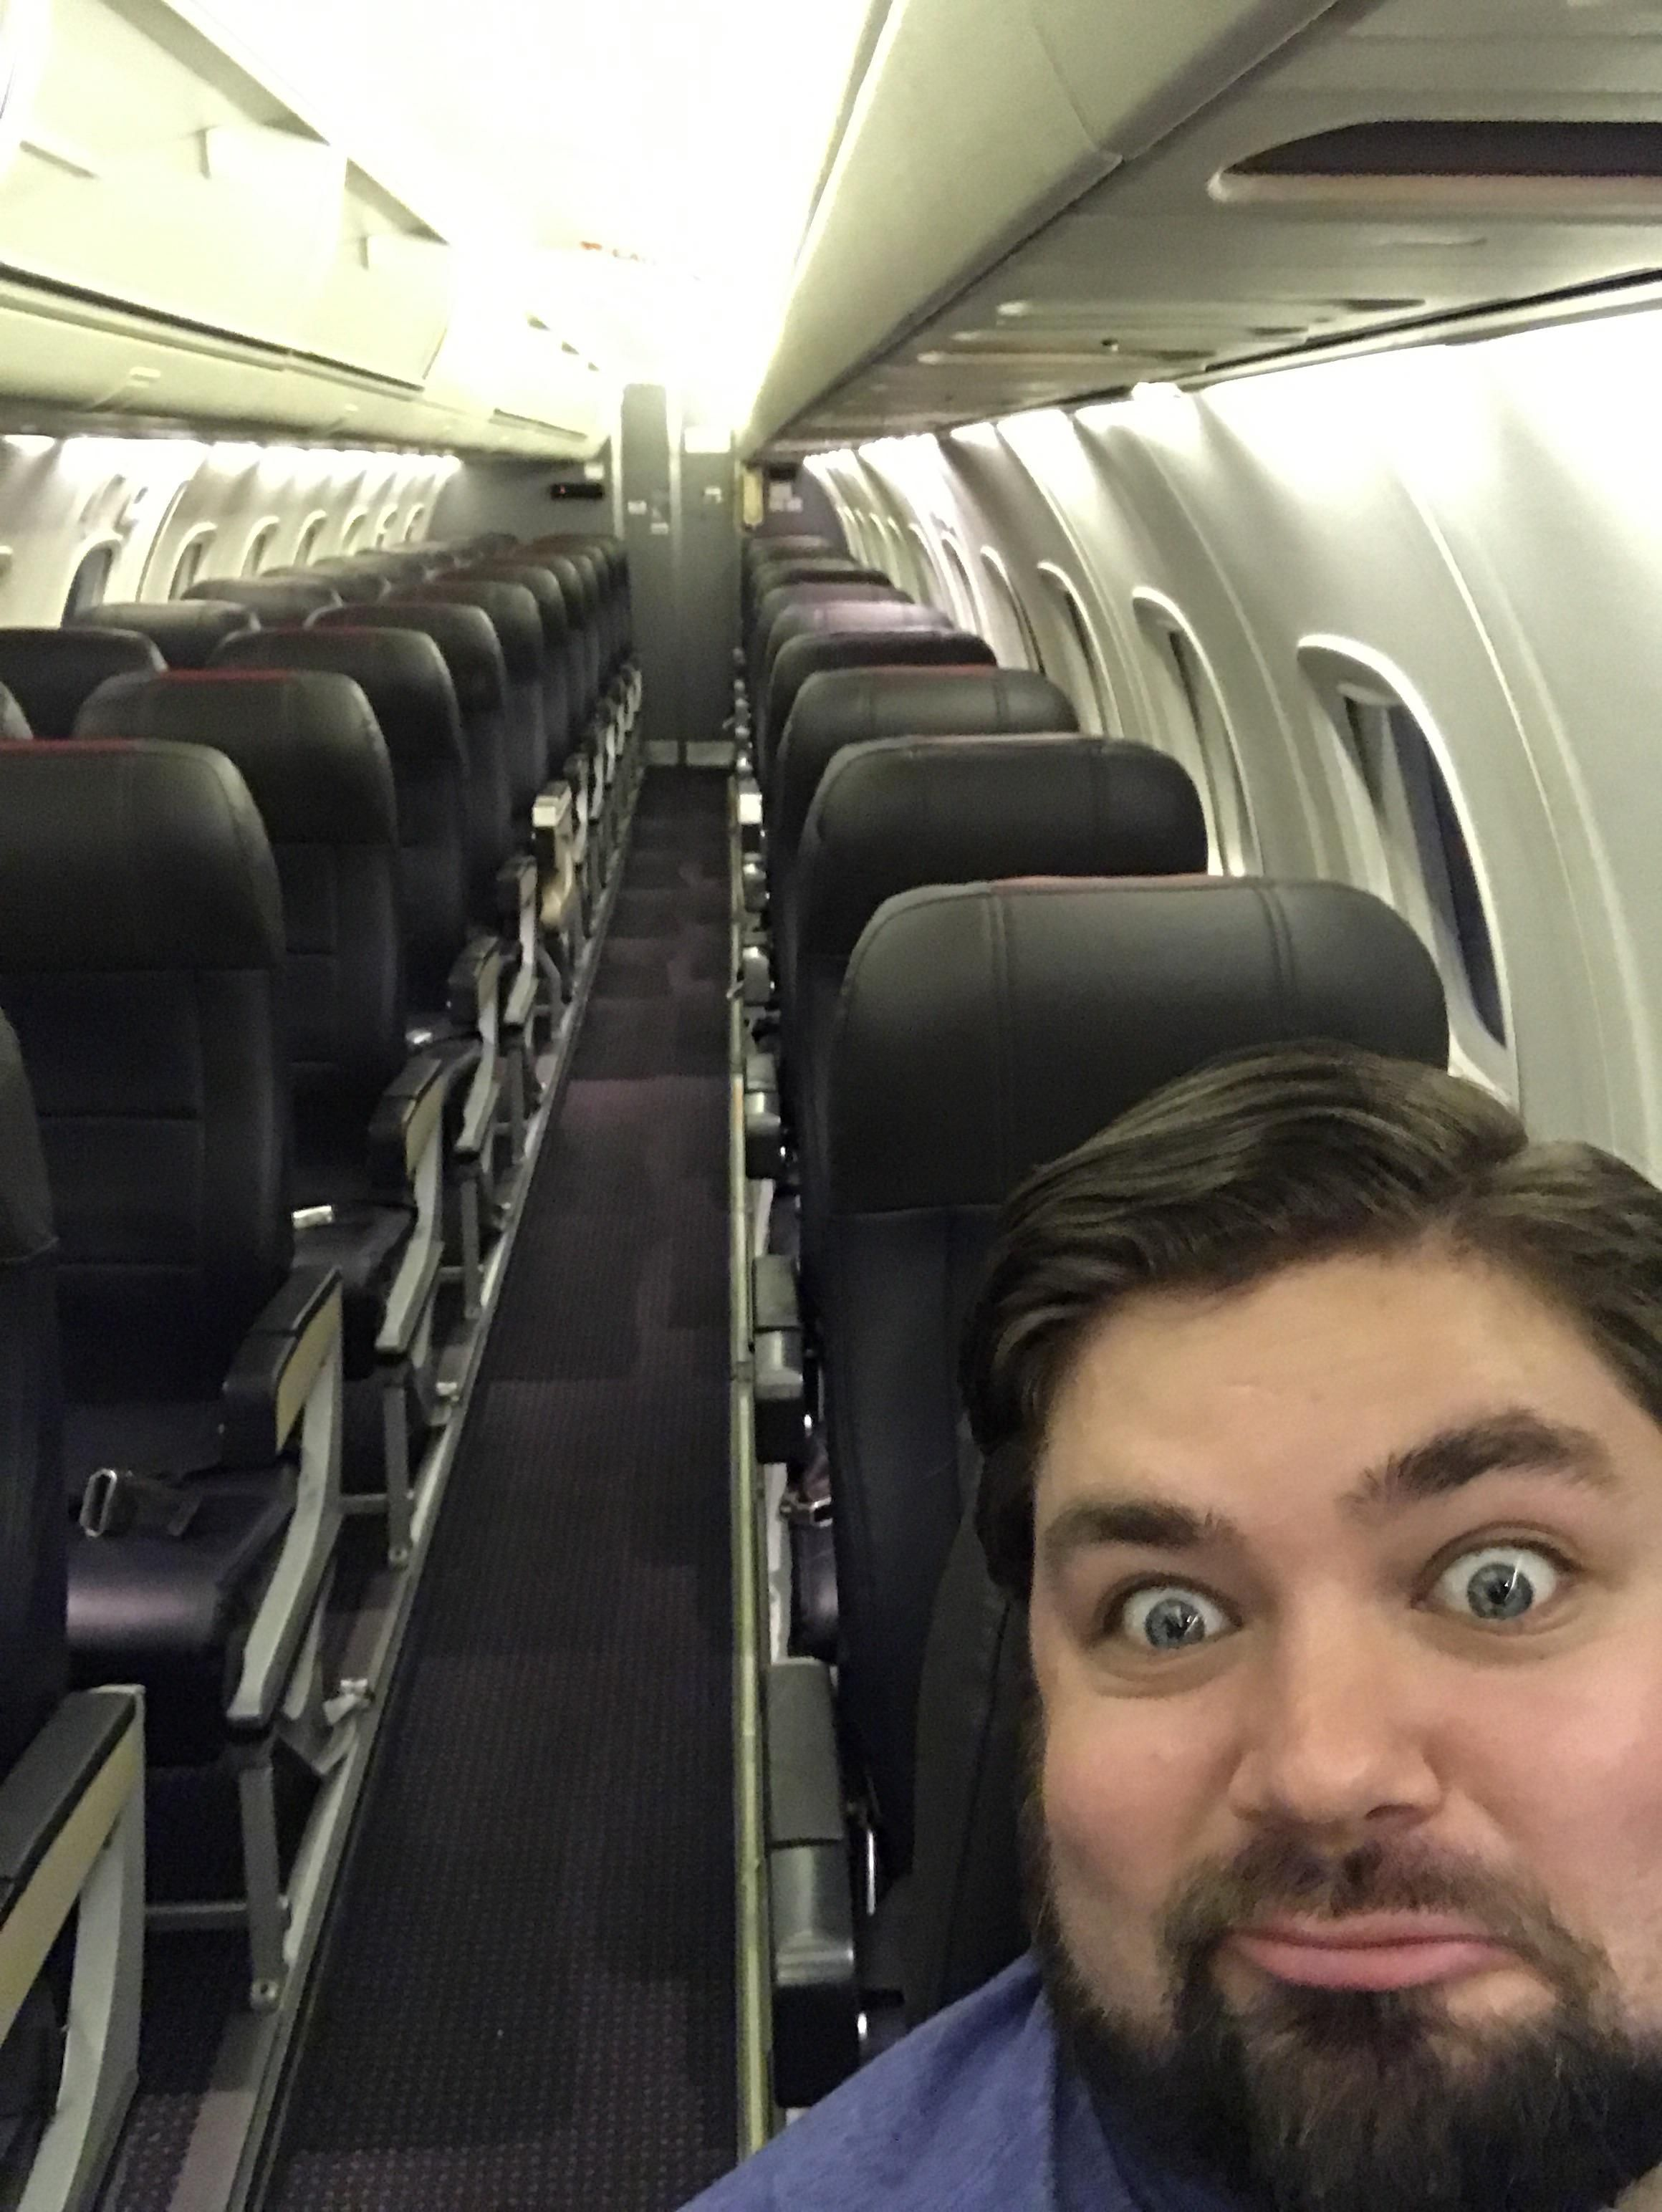 I, too, can pretend to be the only passenger by boarding first!